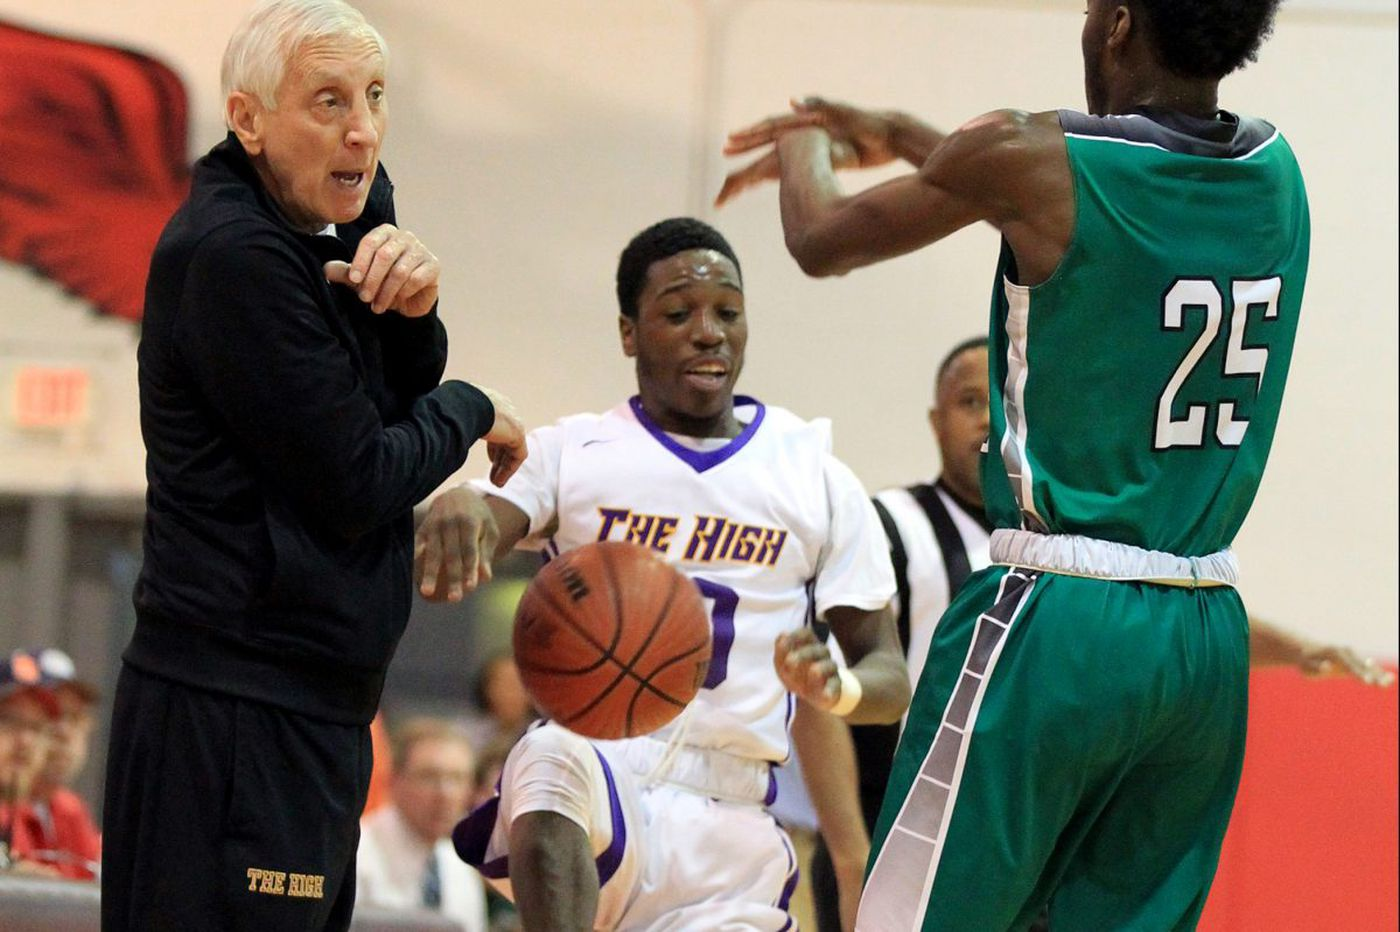 Nasir and Nasim Hinson power Camden past Camden Catholic